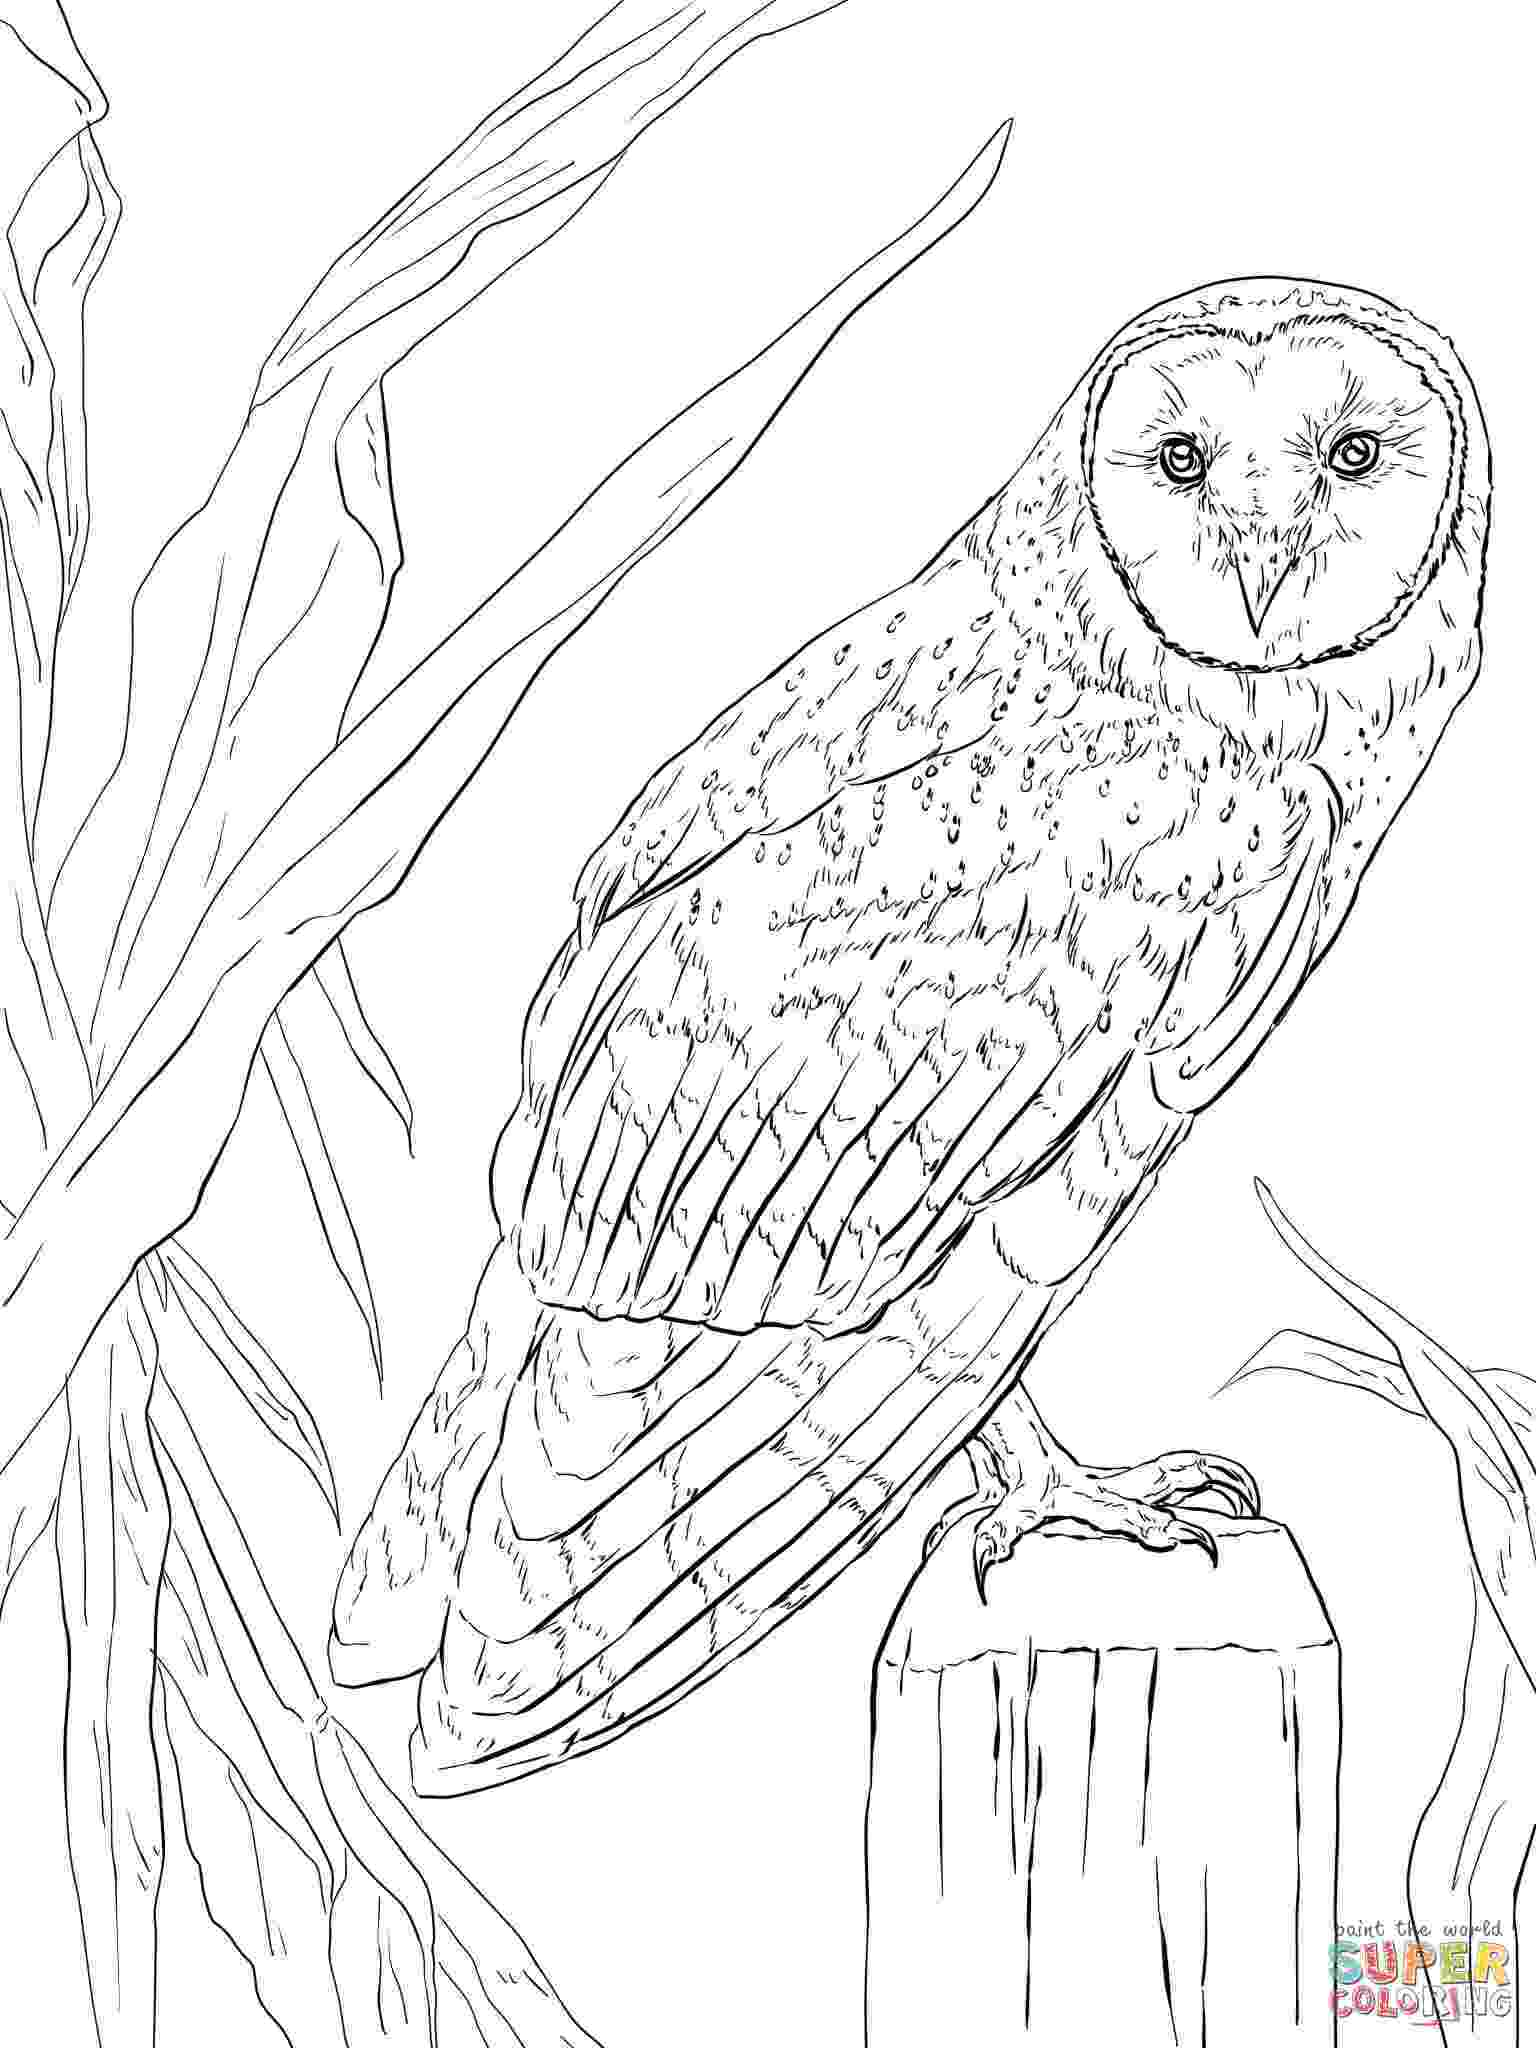 nocturnal animals coloring pages free pictures of nocturnal animals download free clip art animals pages coloring nocturnal